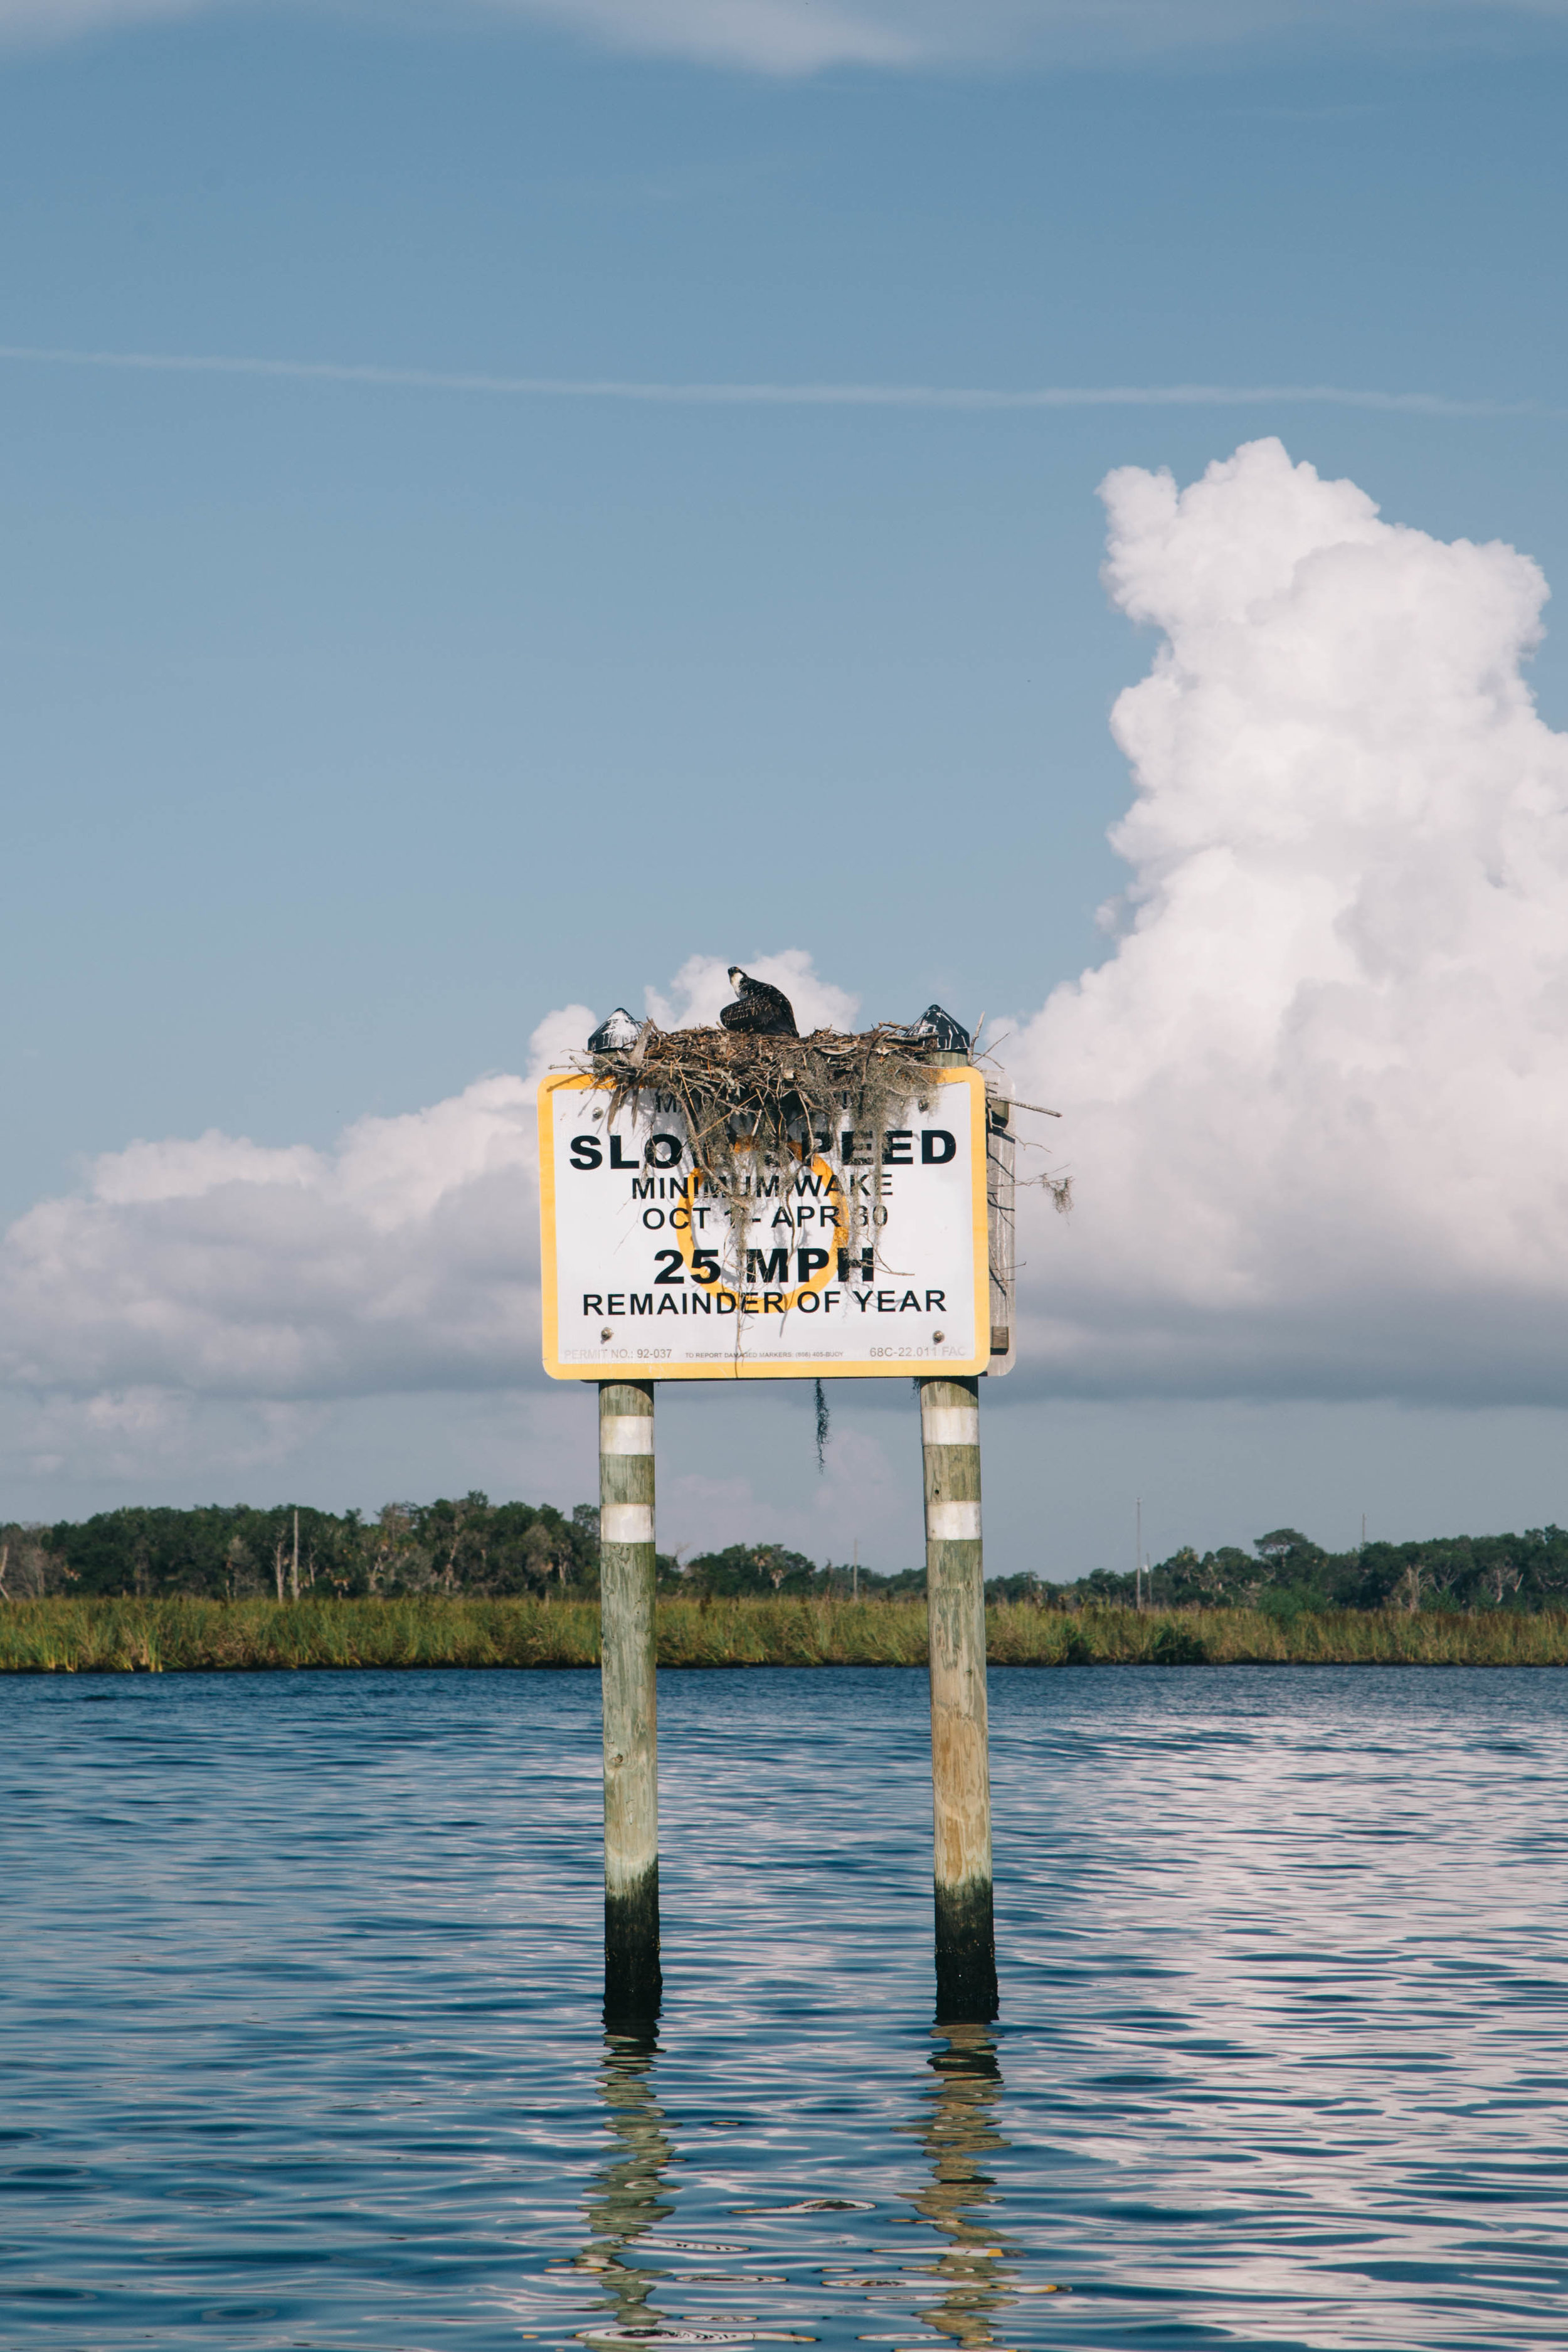 Wildlife can be seen everywhere during the Florida Scallop Season